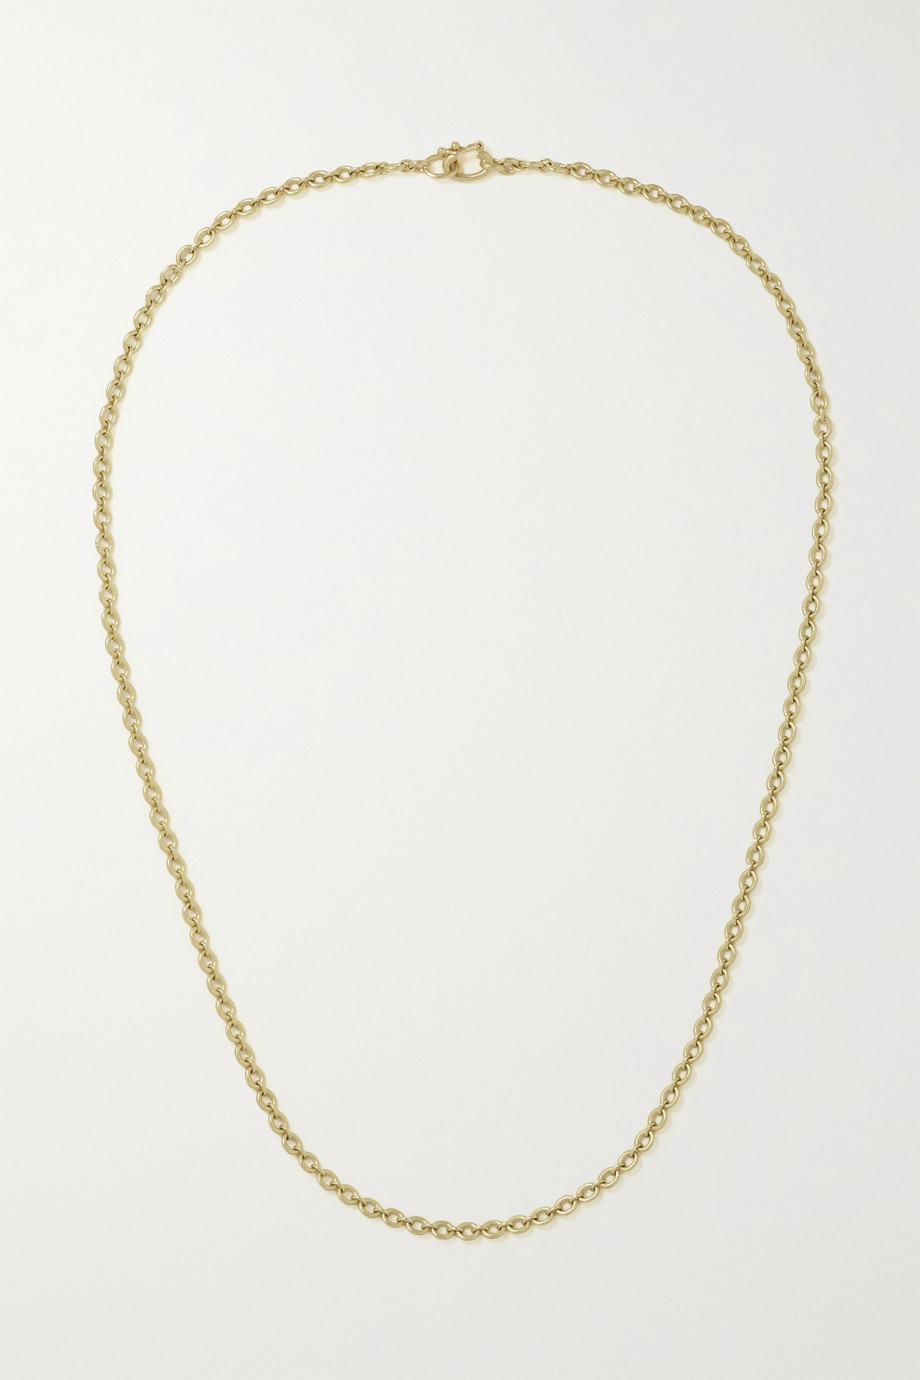 Irene Neuwirth Collier en or 18 carats Classic